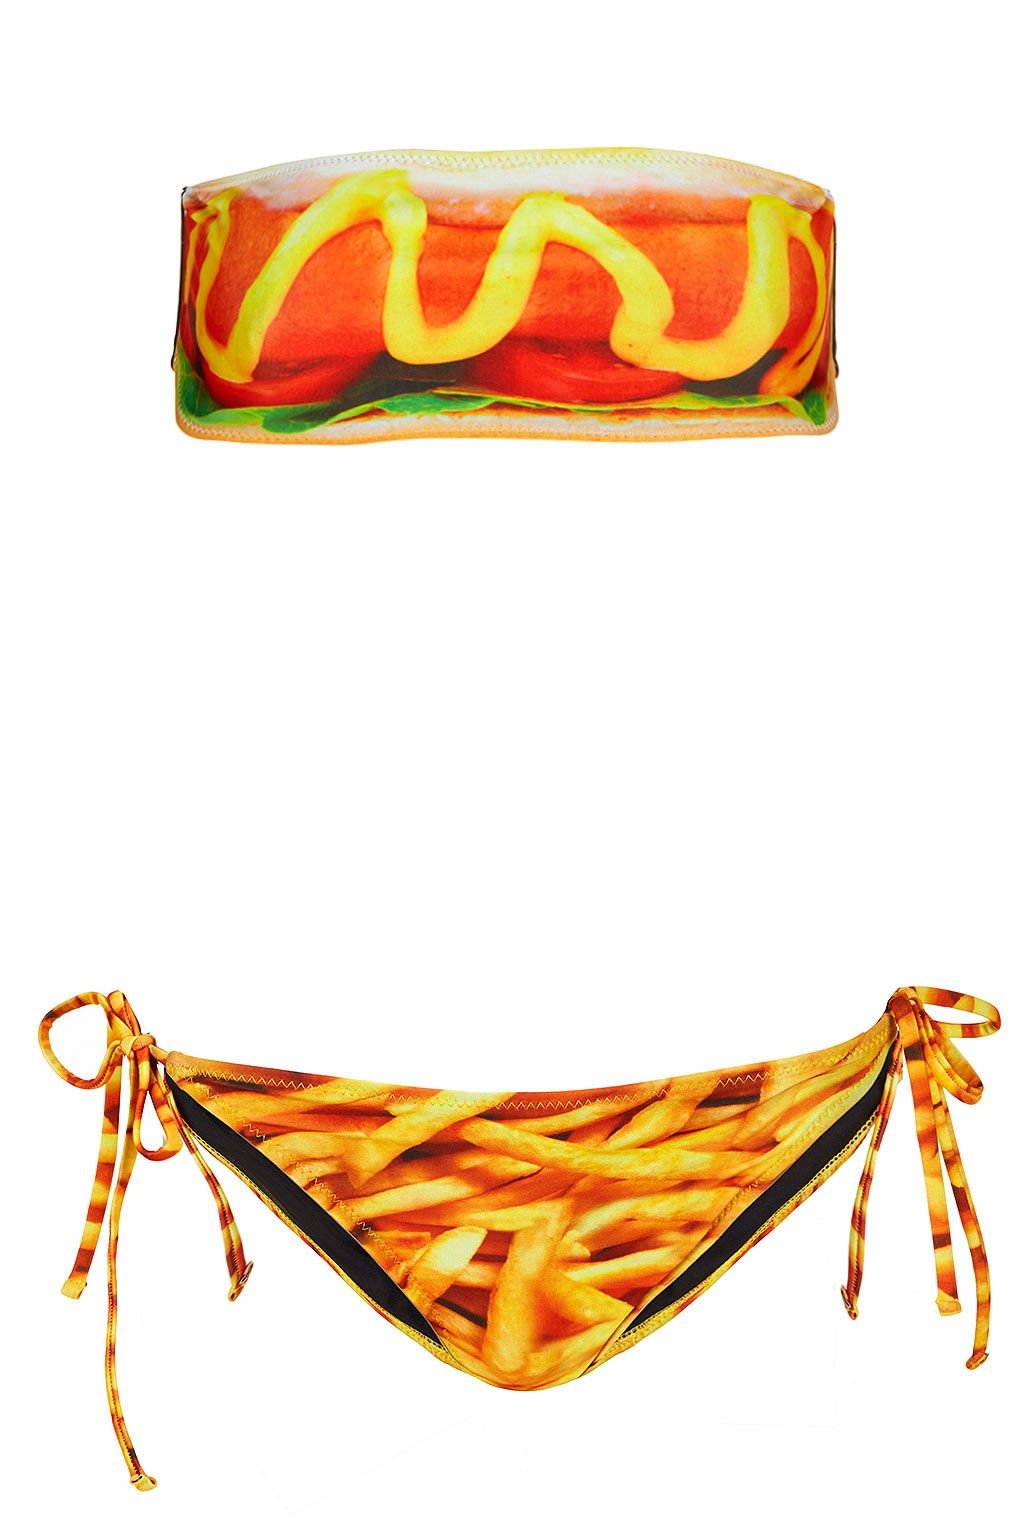 Bandeau Bikini hotdog and french fries graphic.  Too funny and neat not to share.